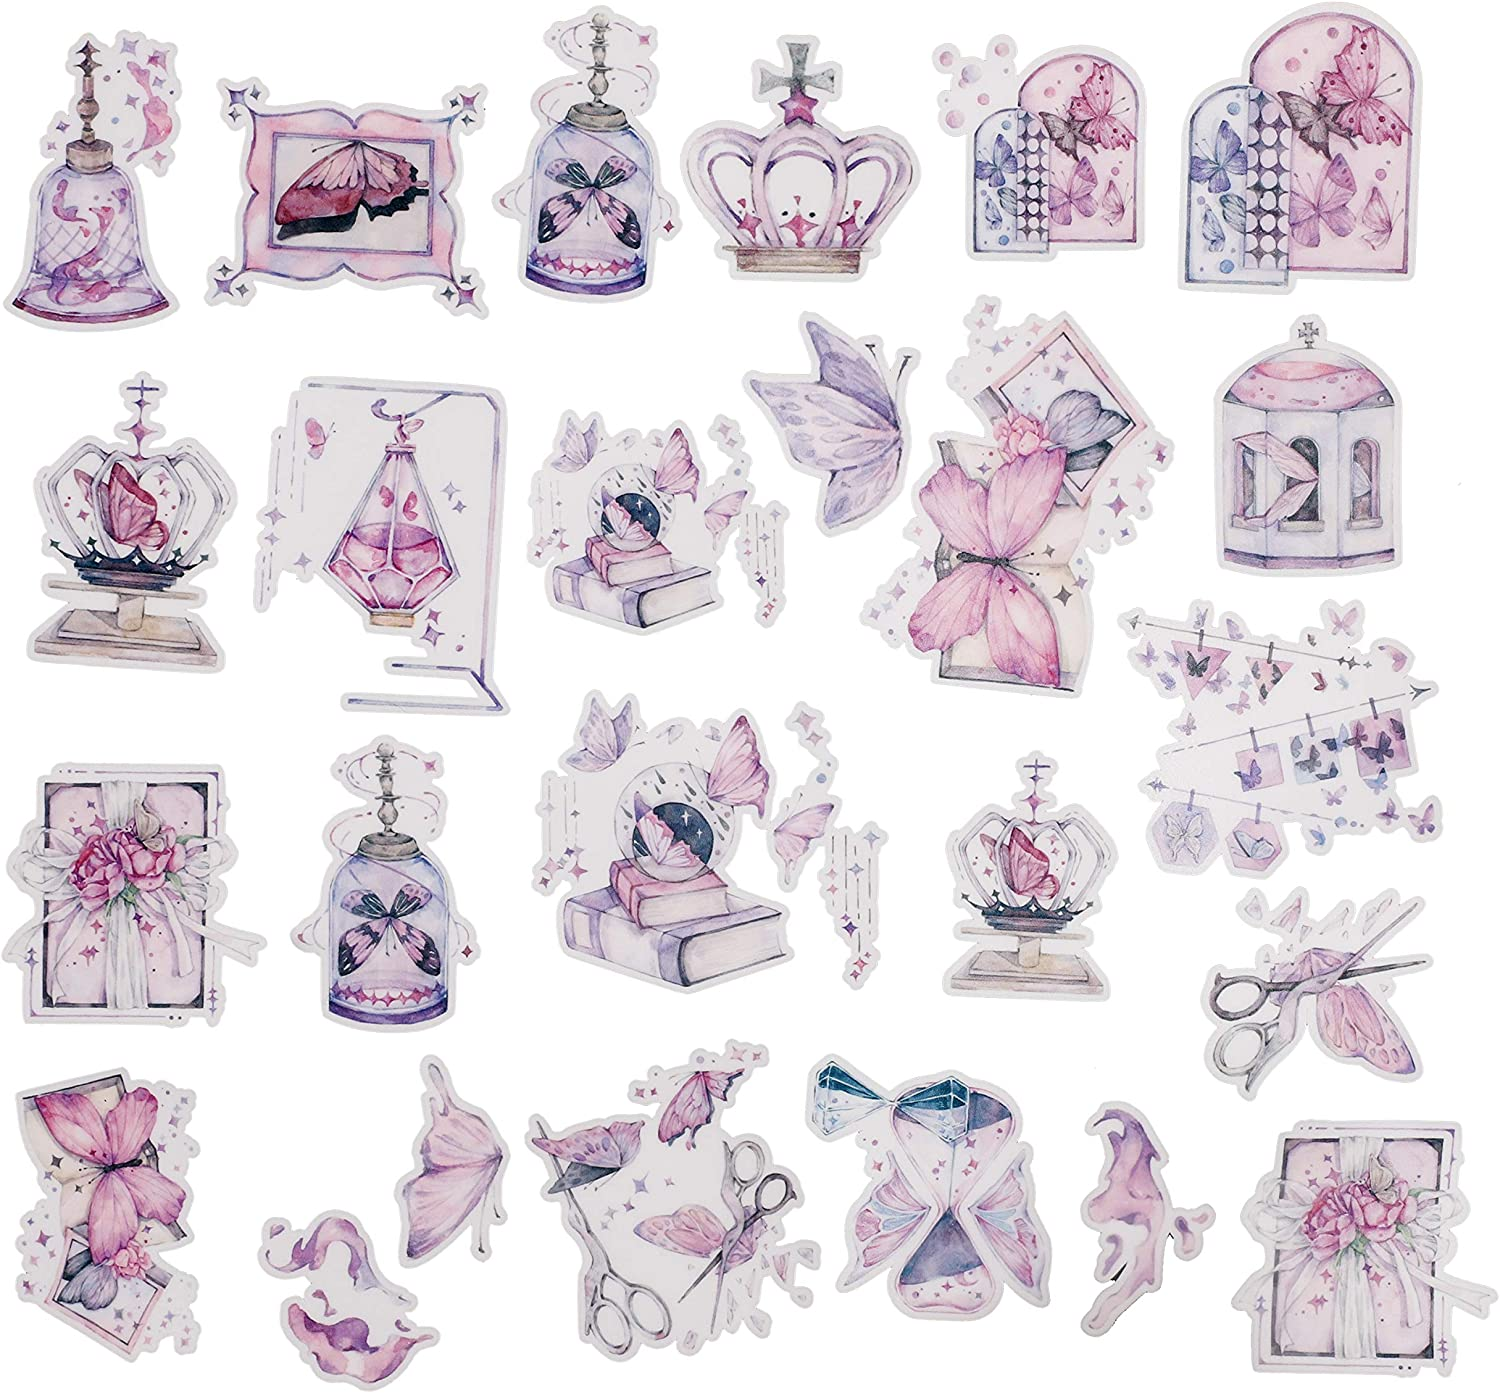 Navy Peony Pink Butterfly Stickers for Girls (25 Pack) - Small, Cute, Waterproof and Durable | Assorted Art Decals for Scrapbook, Laptops, Water Bottles